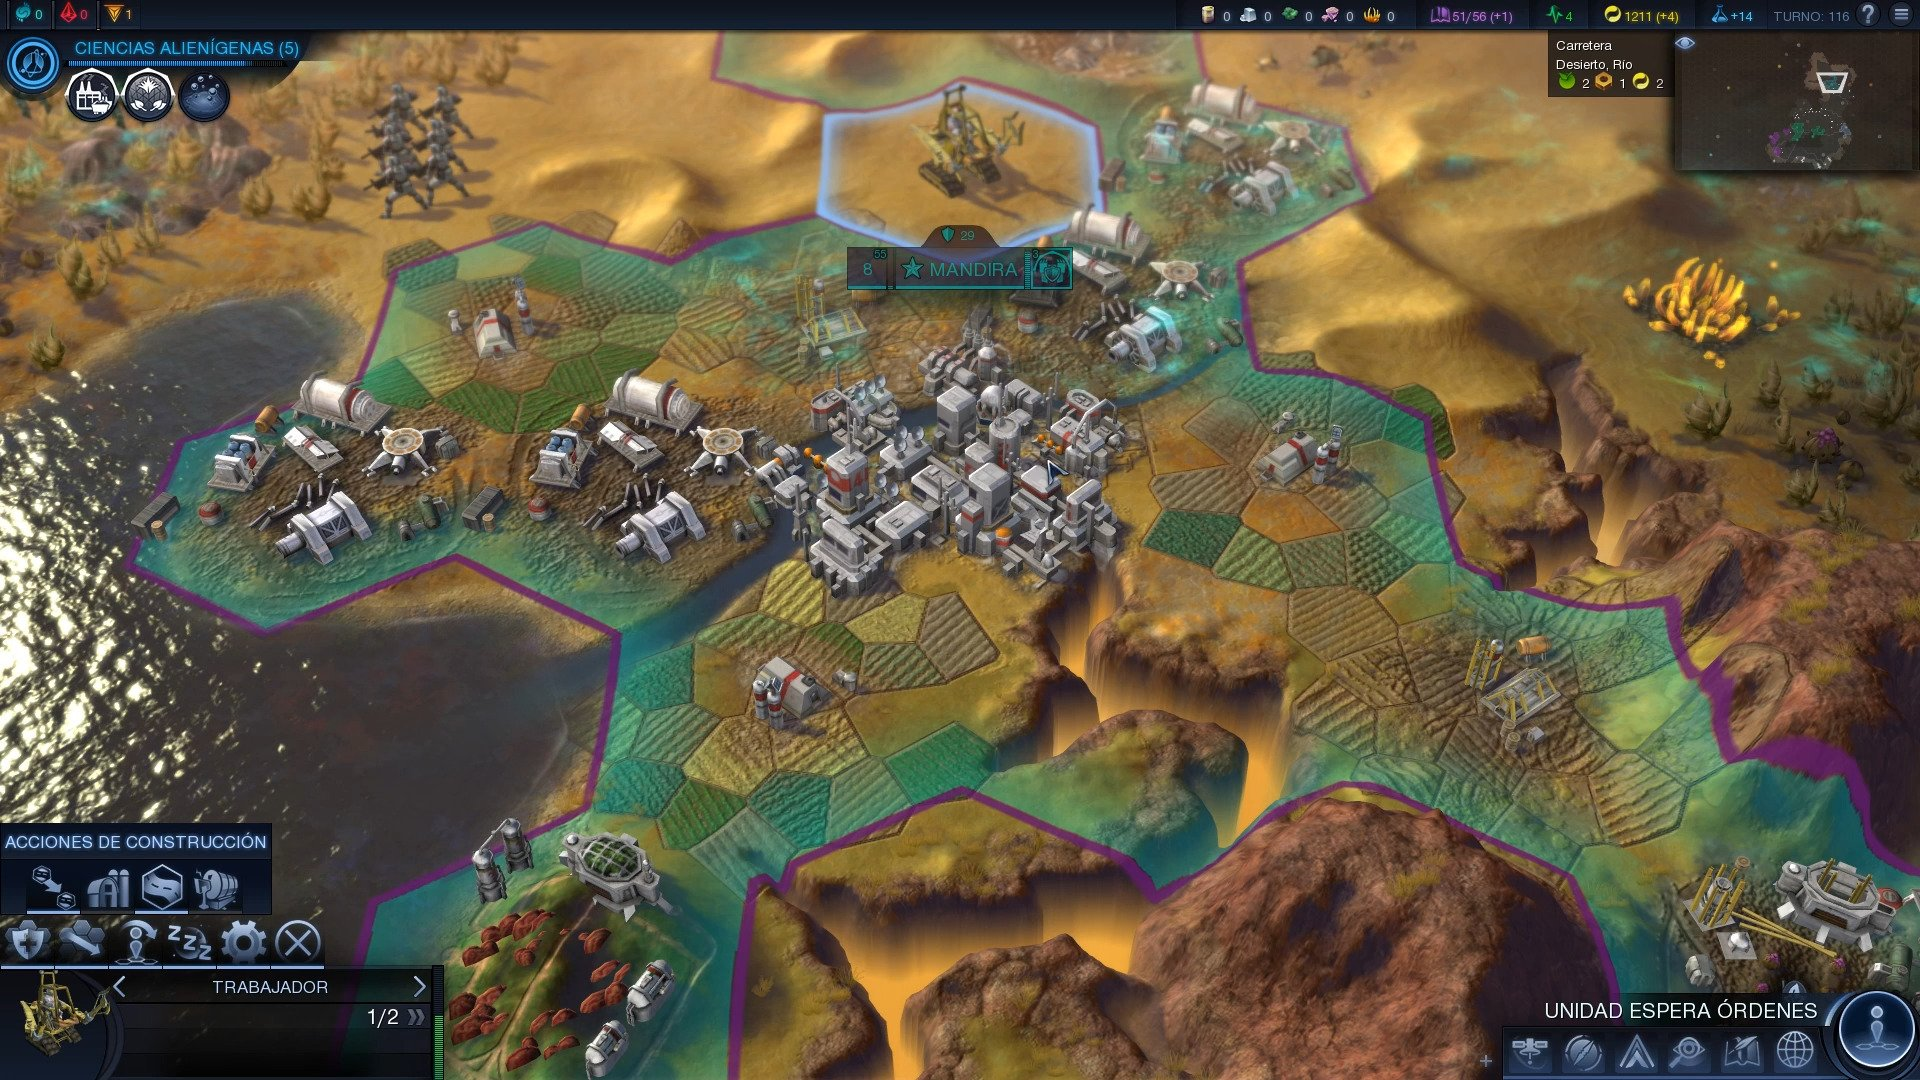 Civilization 5 matchmaking